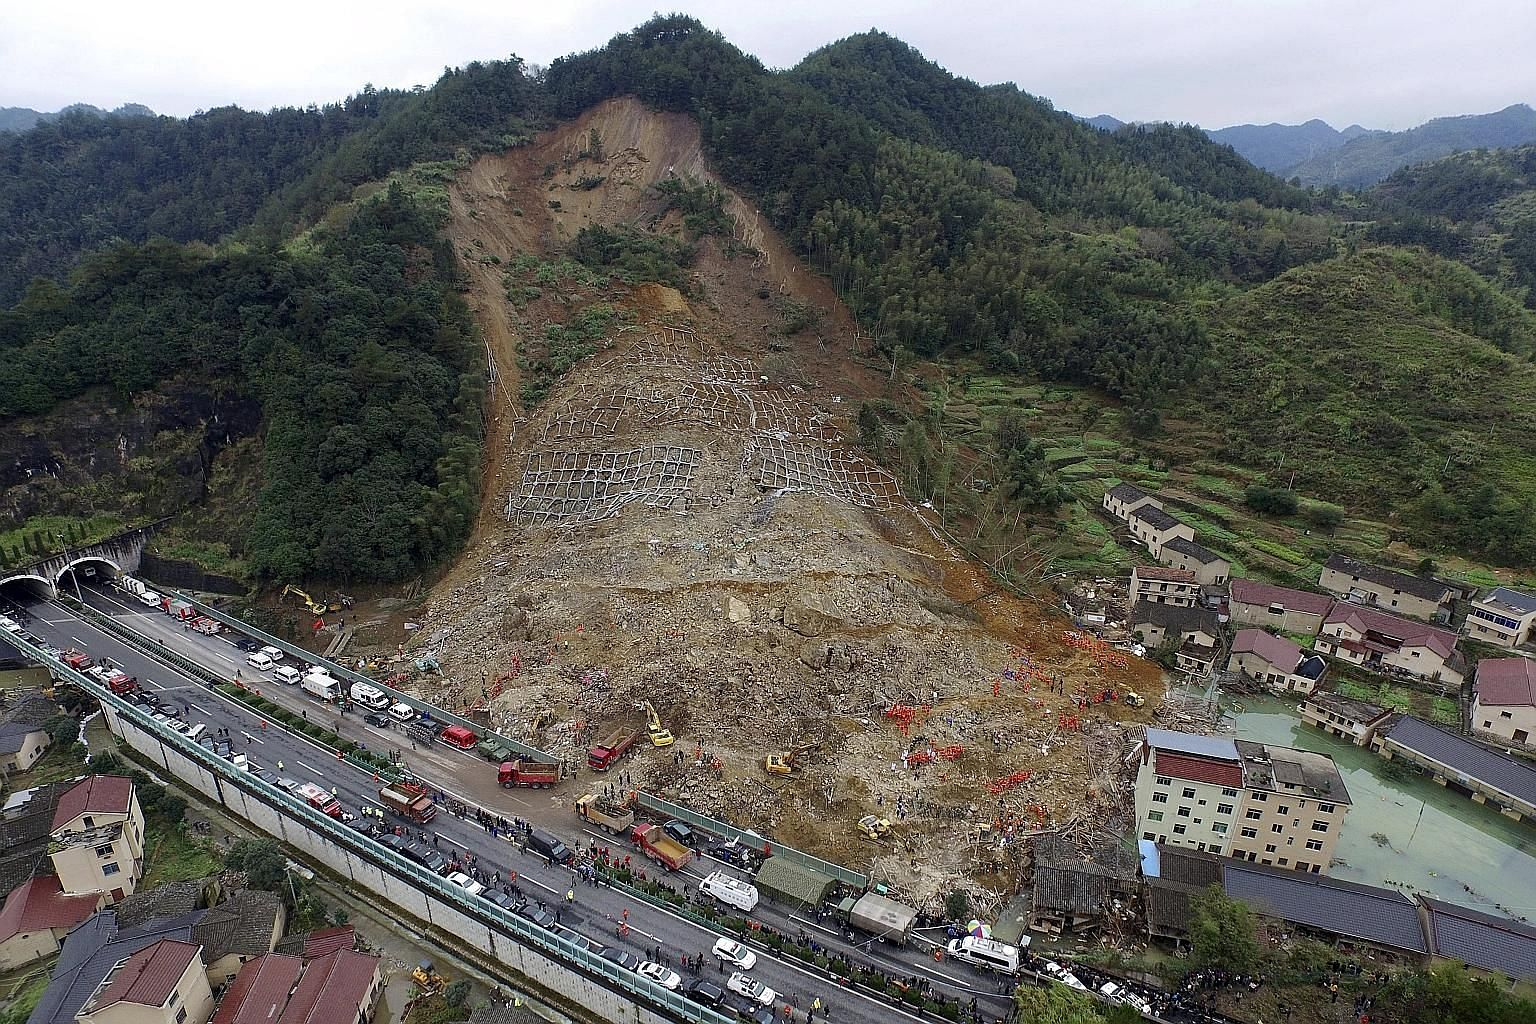 An aerial view of rescuers searching for survivors at the site of a landslide in China's Zhejiang province. Only one person has been rescued so far in the disaster which struck last Friday. The death toll stands at 25, with 12 people missing.